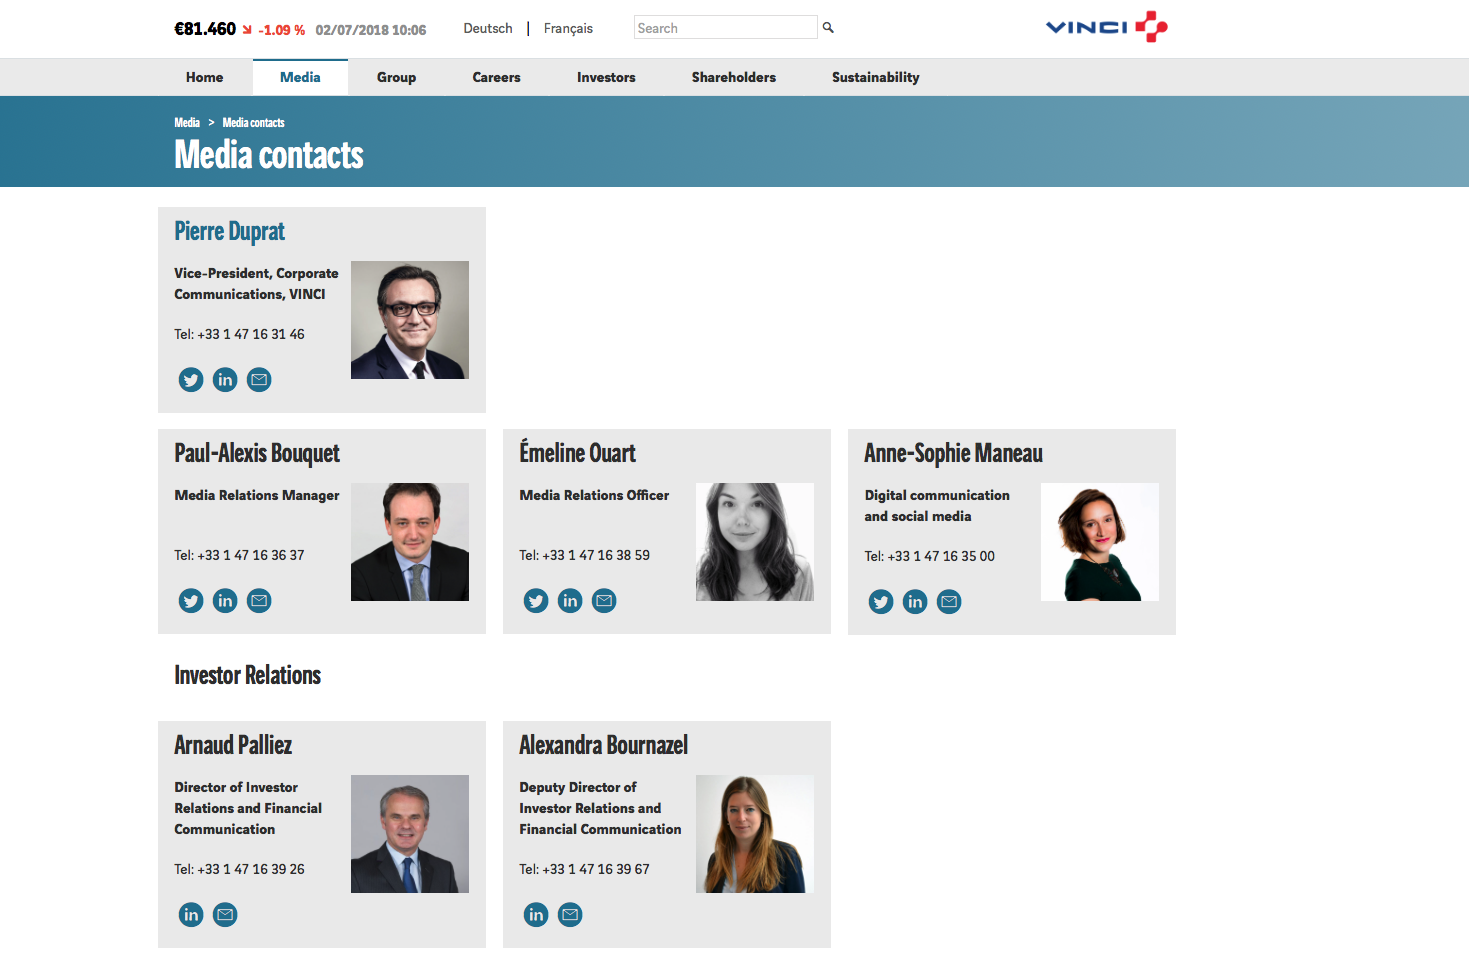 Vinci's Media contacts page